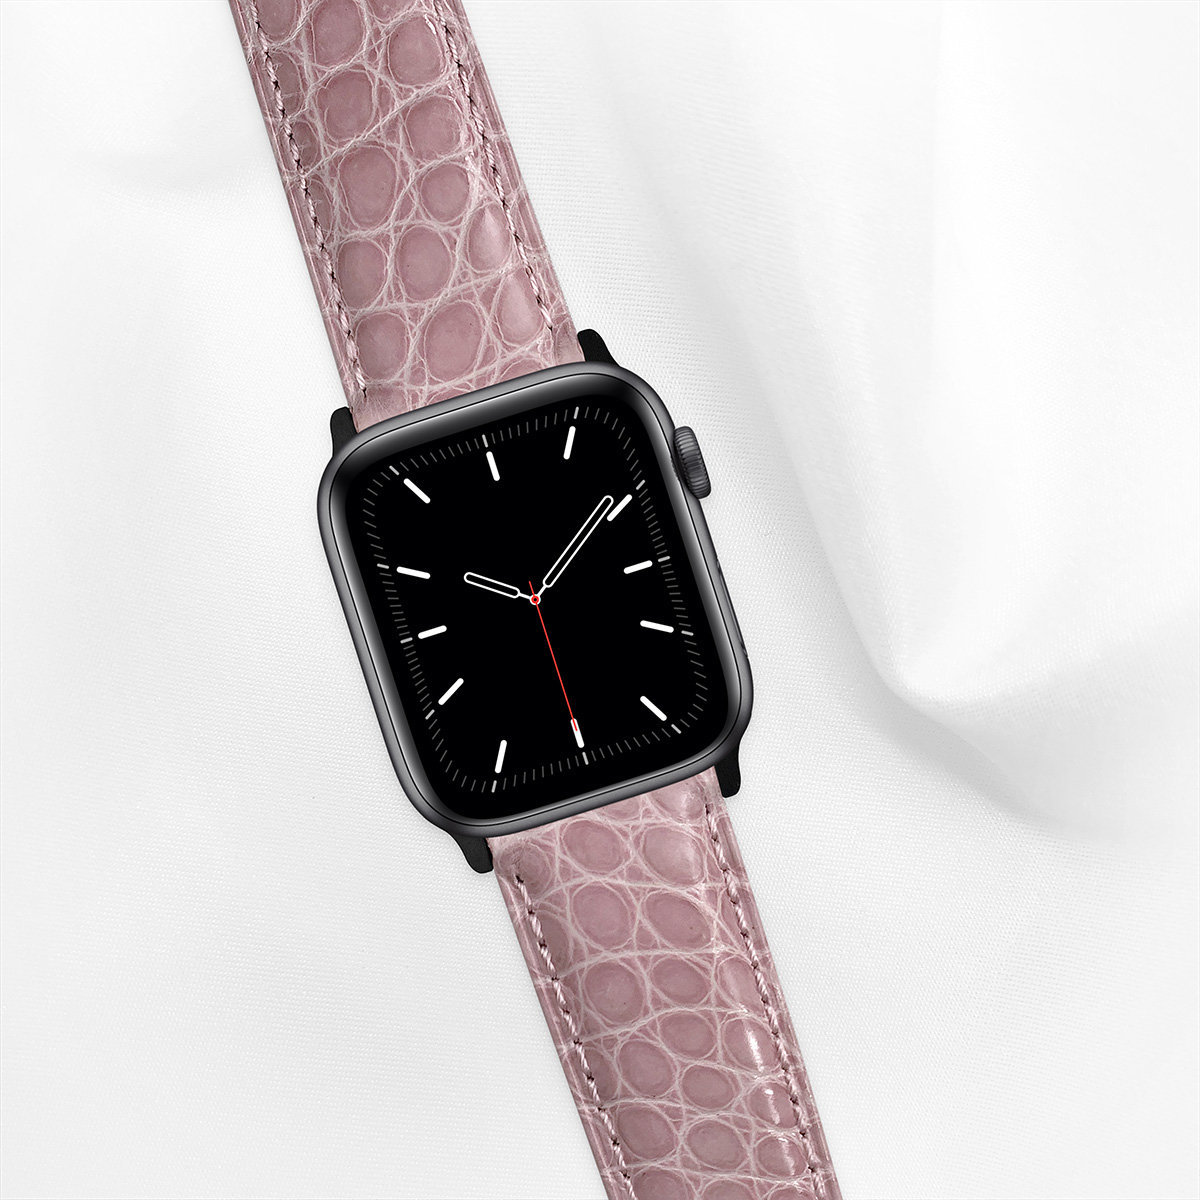 Shiny Alligator 44mm Apple Watch 5 Strap, Shaded Pink, Round Scales, for Large Casing